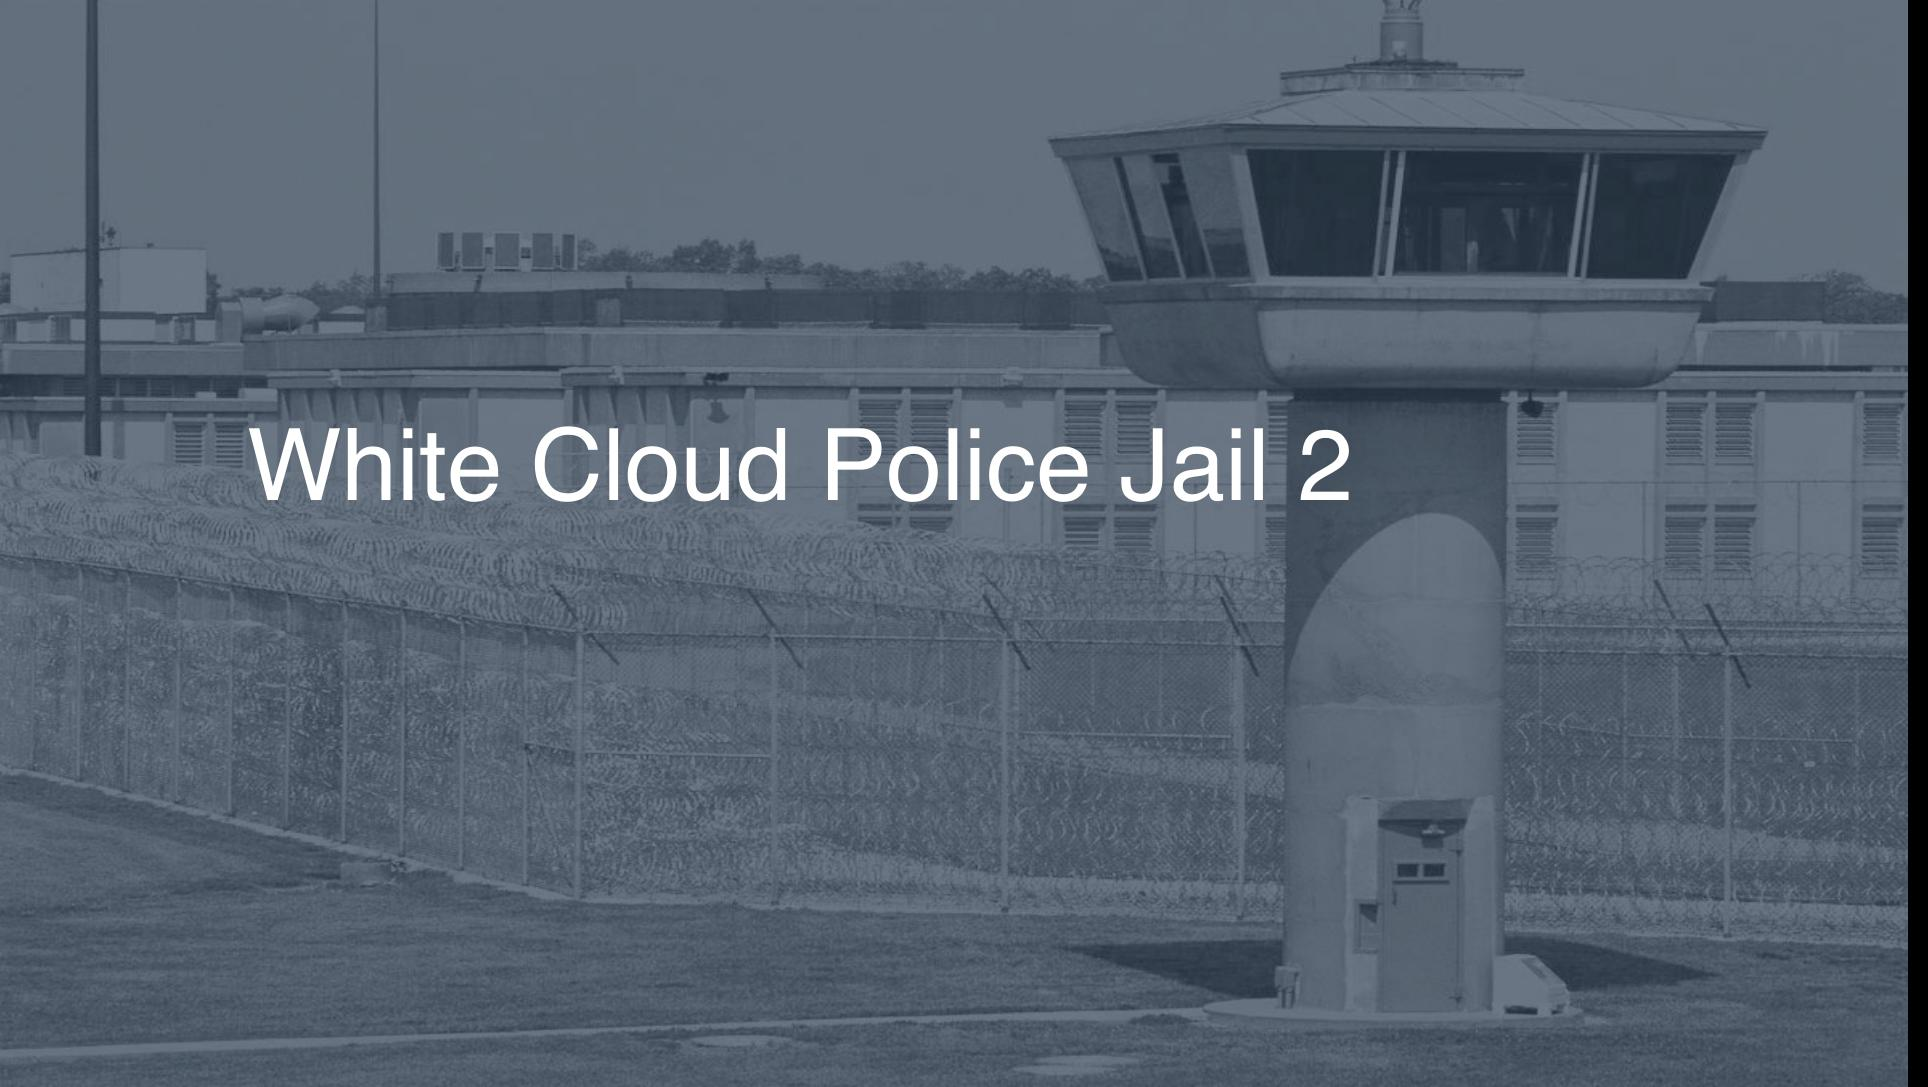 White Cloud Police Jail correctional facility picture